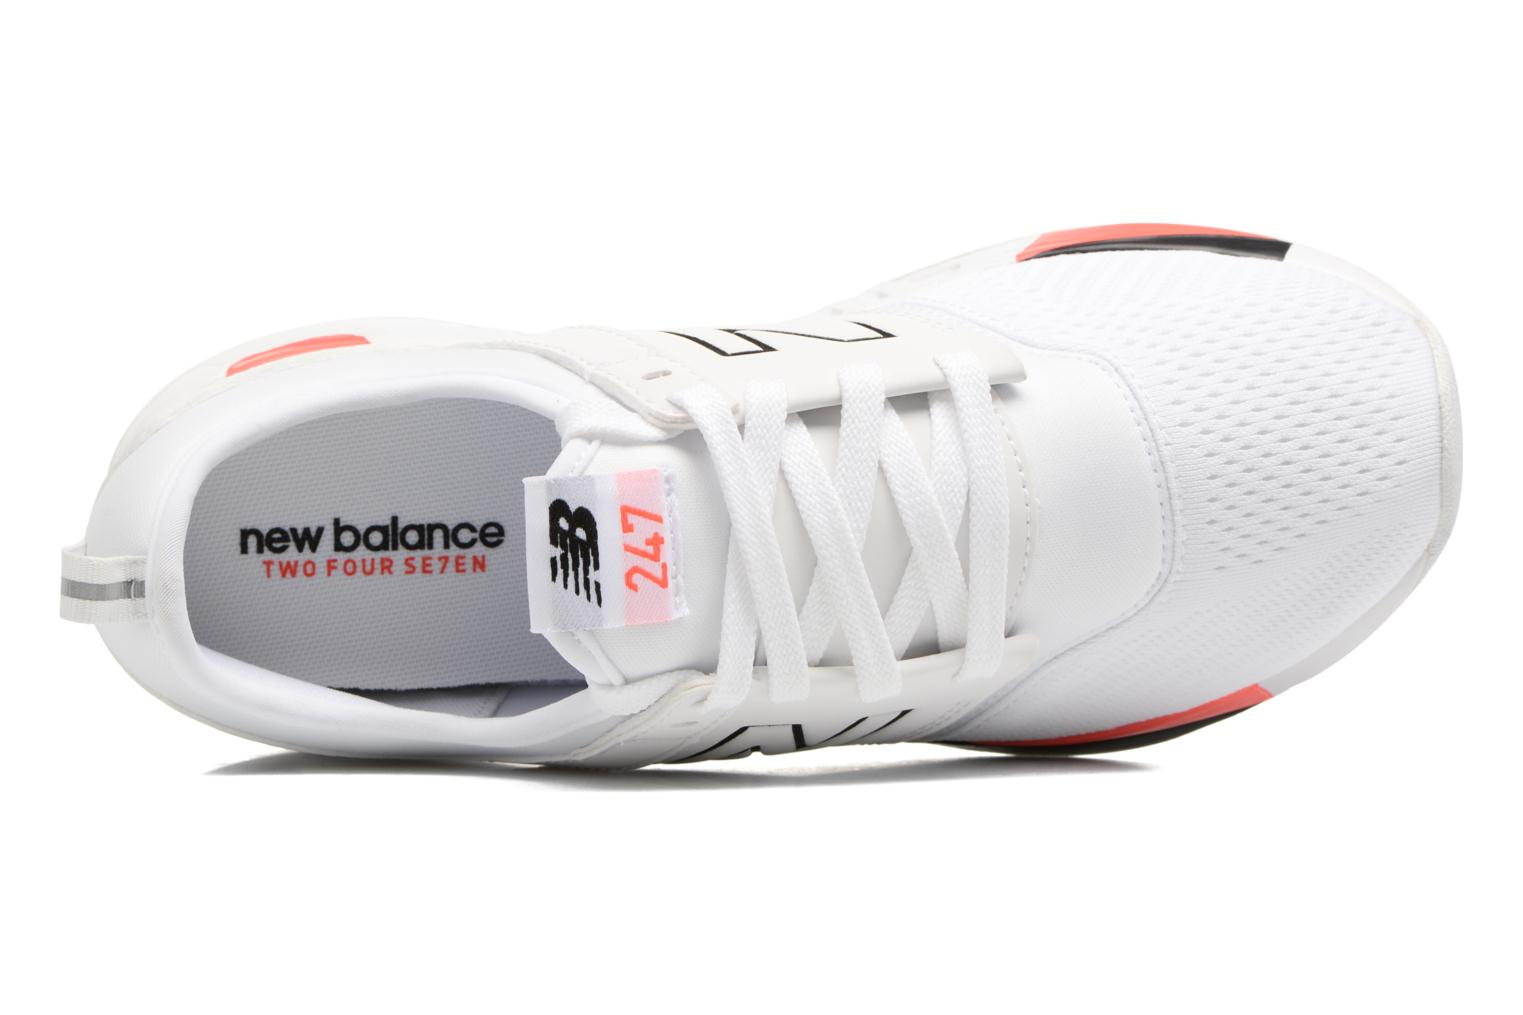 KL247 WRG White/Black